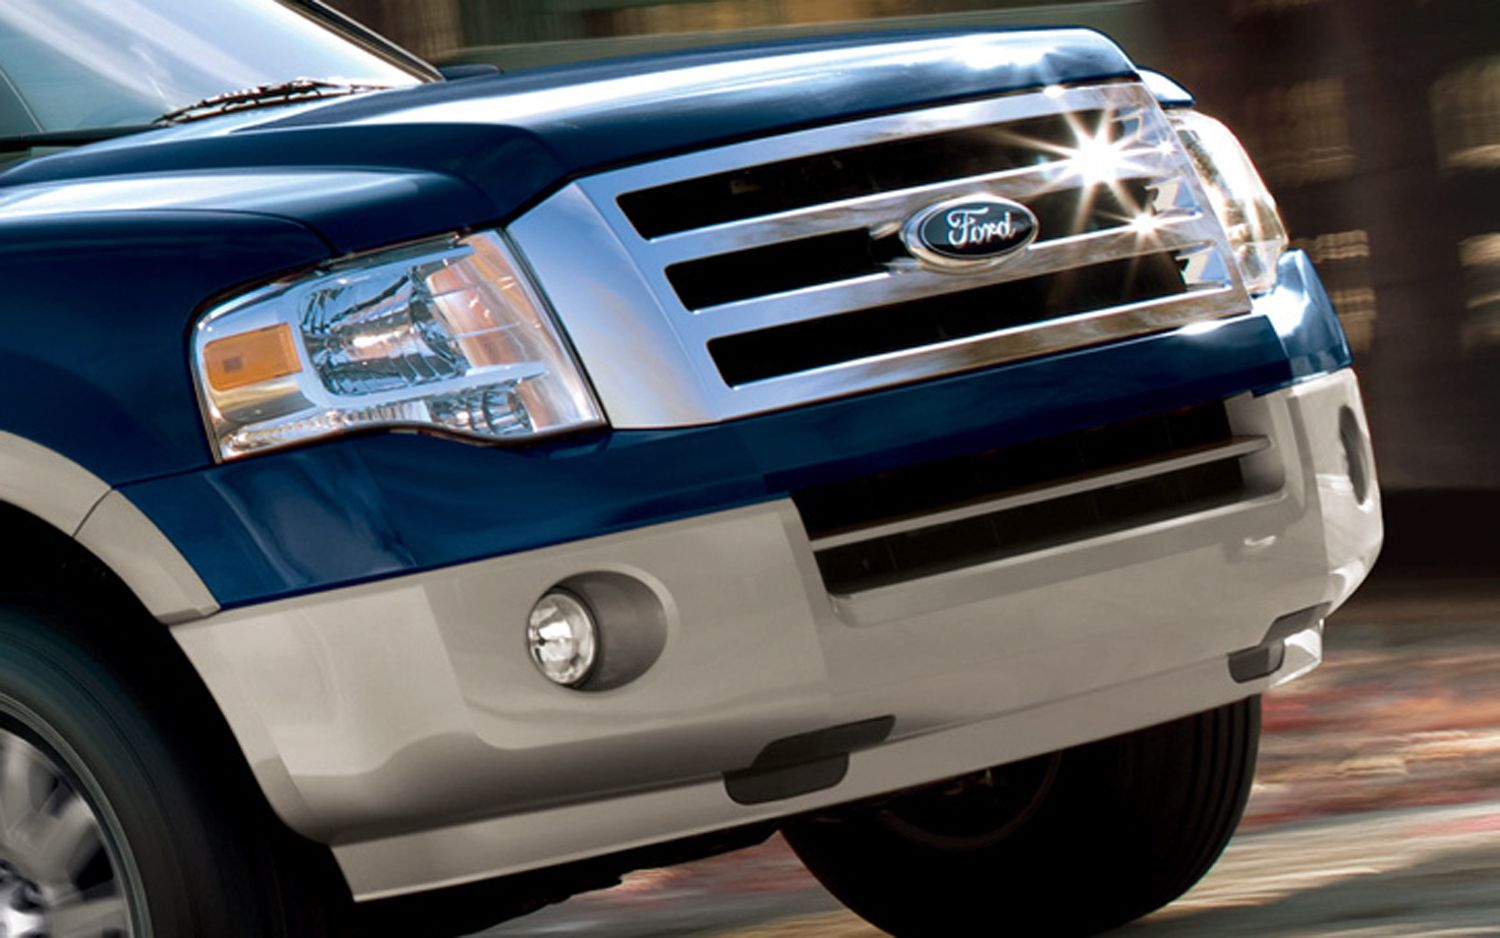 Upcoming 2017 ford expedition upcomingcars models pinterest ford expedition ford and cars